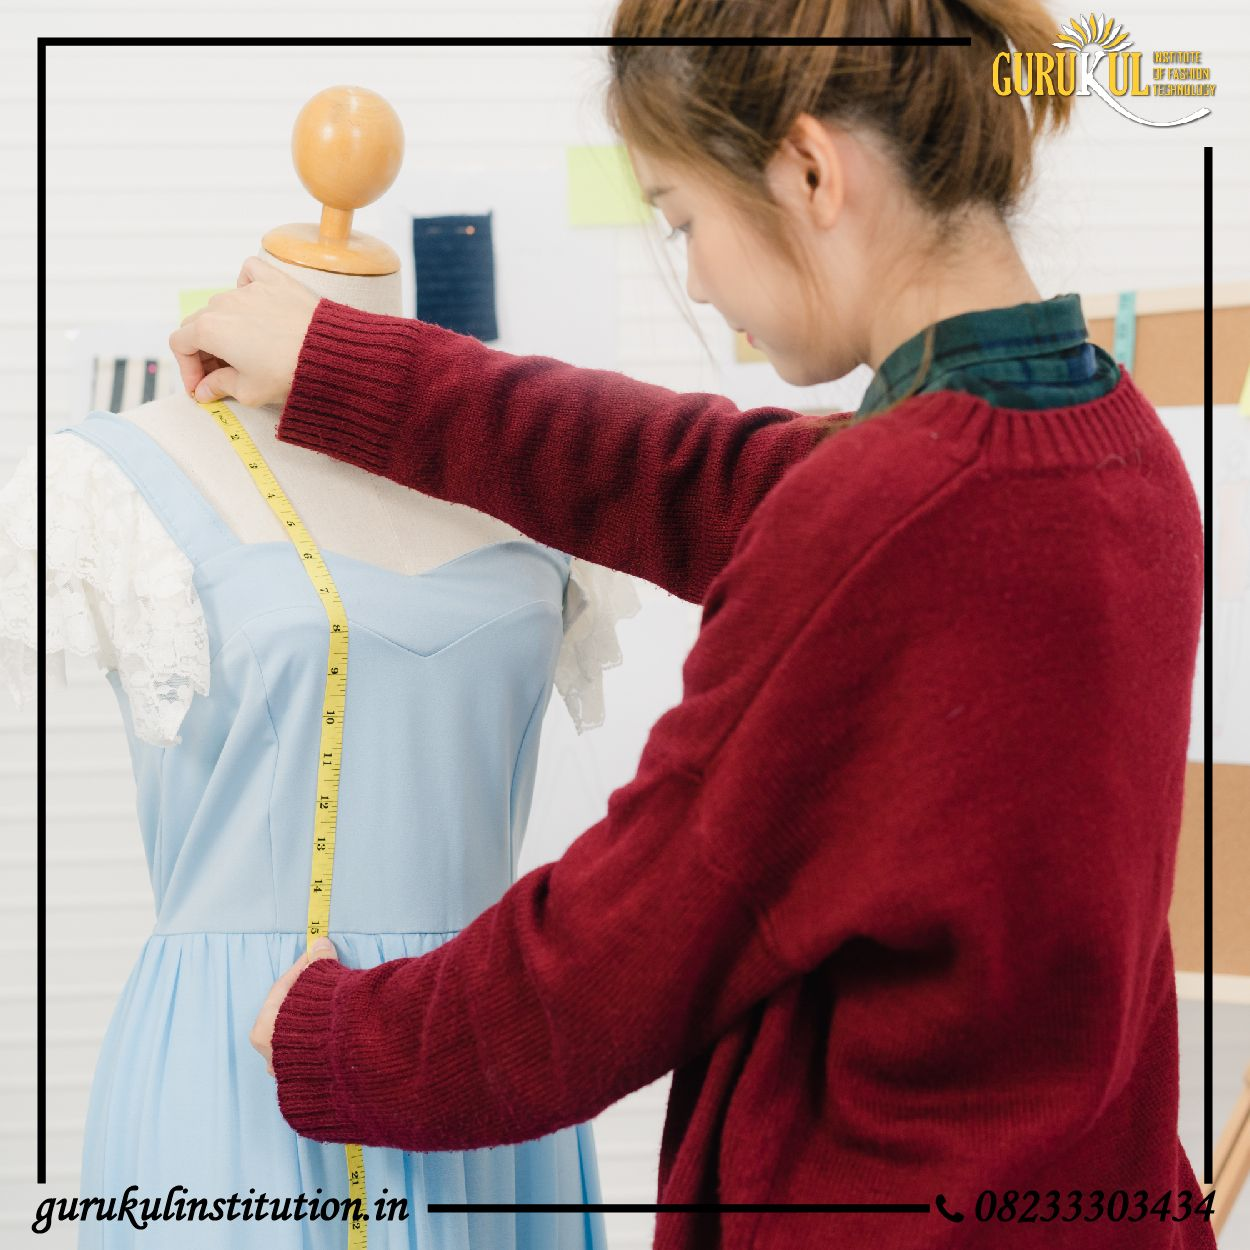 Dresses In 2020 Fashion Designing Institute Technology Fashion Trend Setter